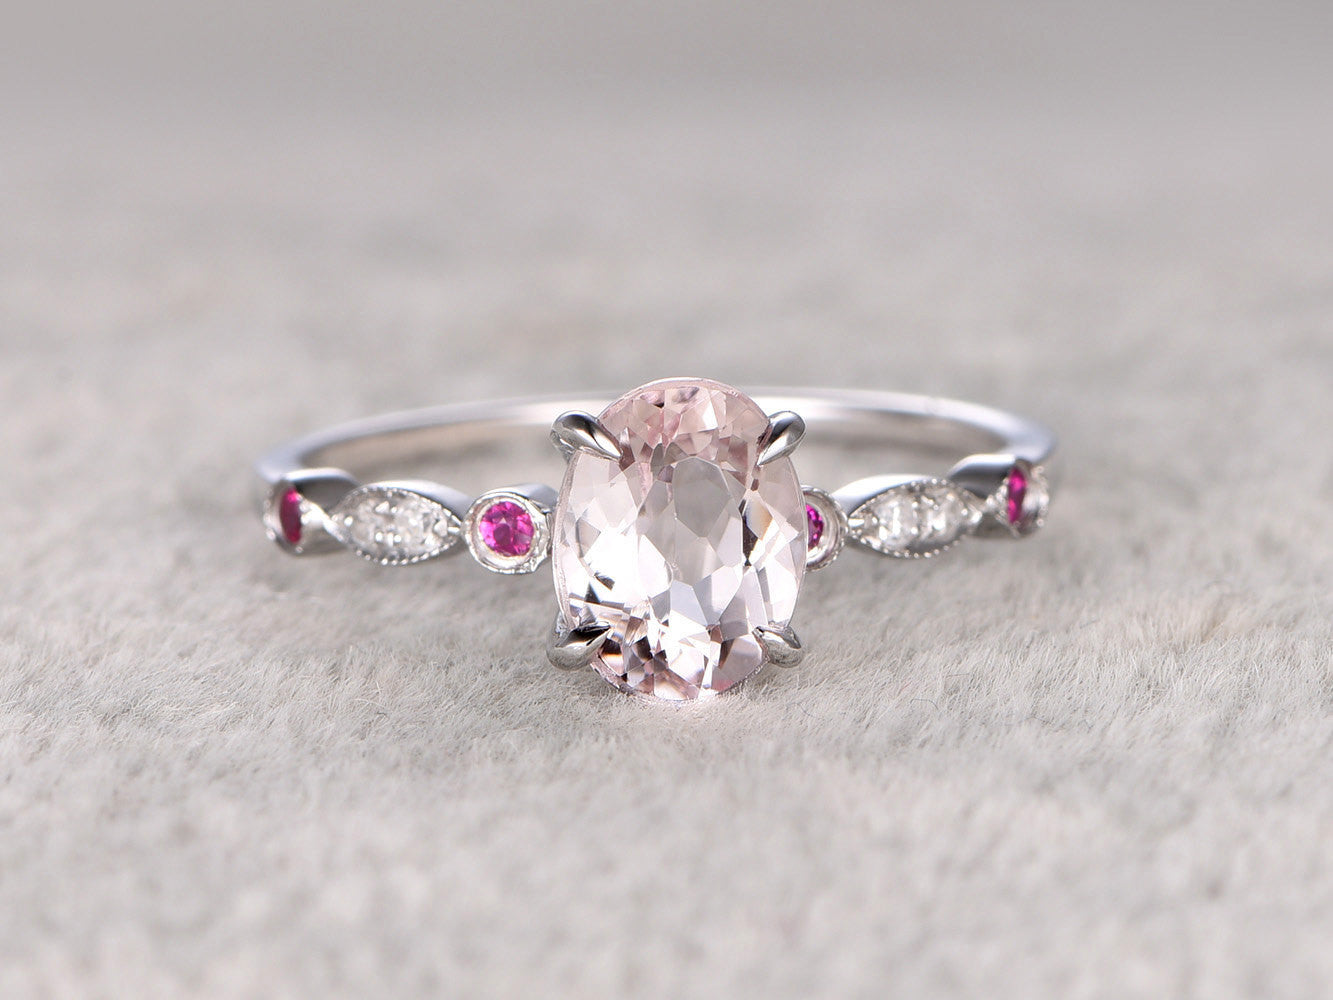 Morganite Engagement ring White gold,Diamond wedding band,14k,6x8mm Oval Cut,Gemstone Promise Bridal Ring,Art Deco matching band,Claw-prong